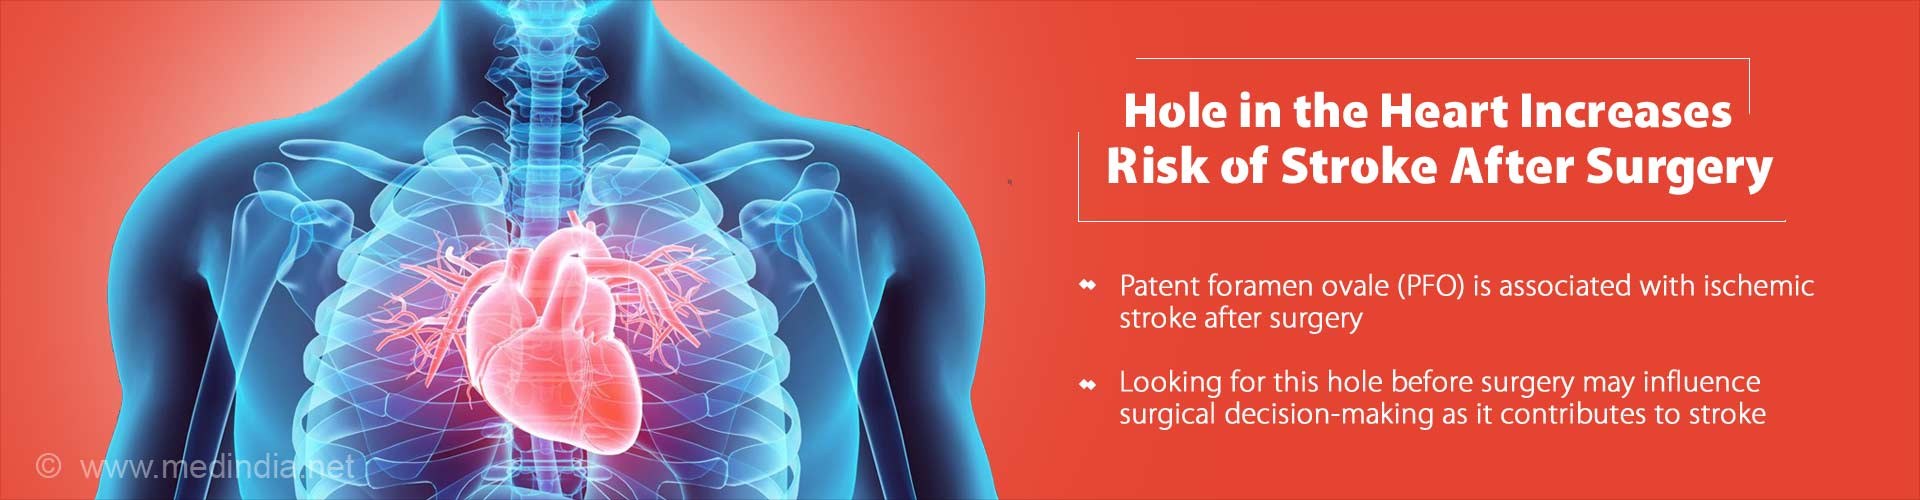 Hole in the Heart Increases Risk for Stroke After Surgery